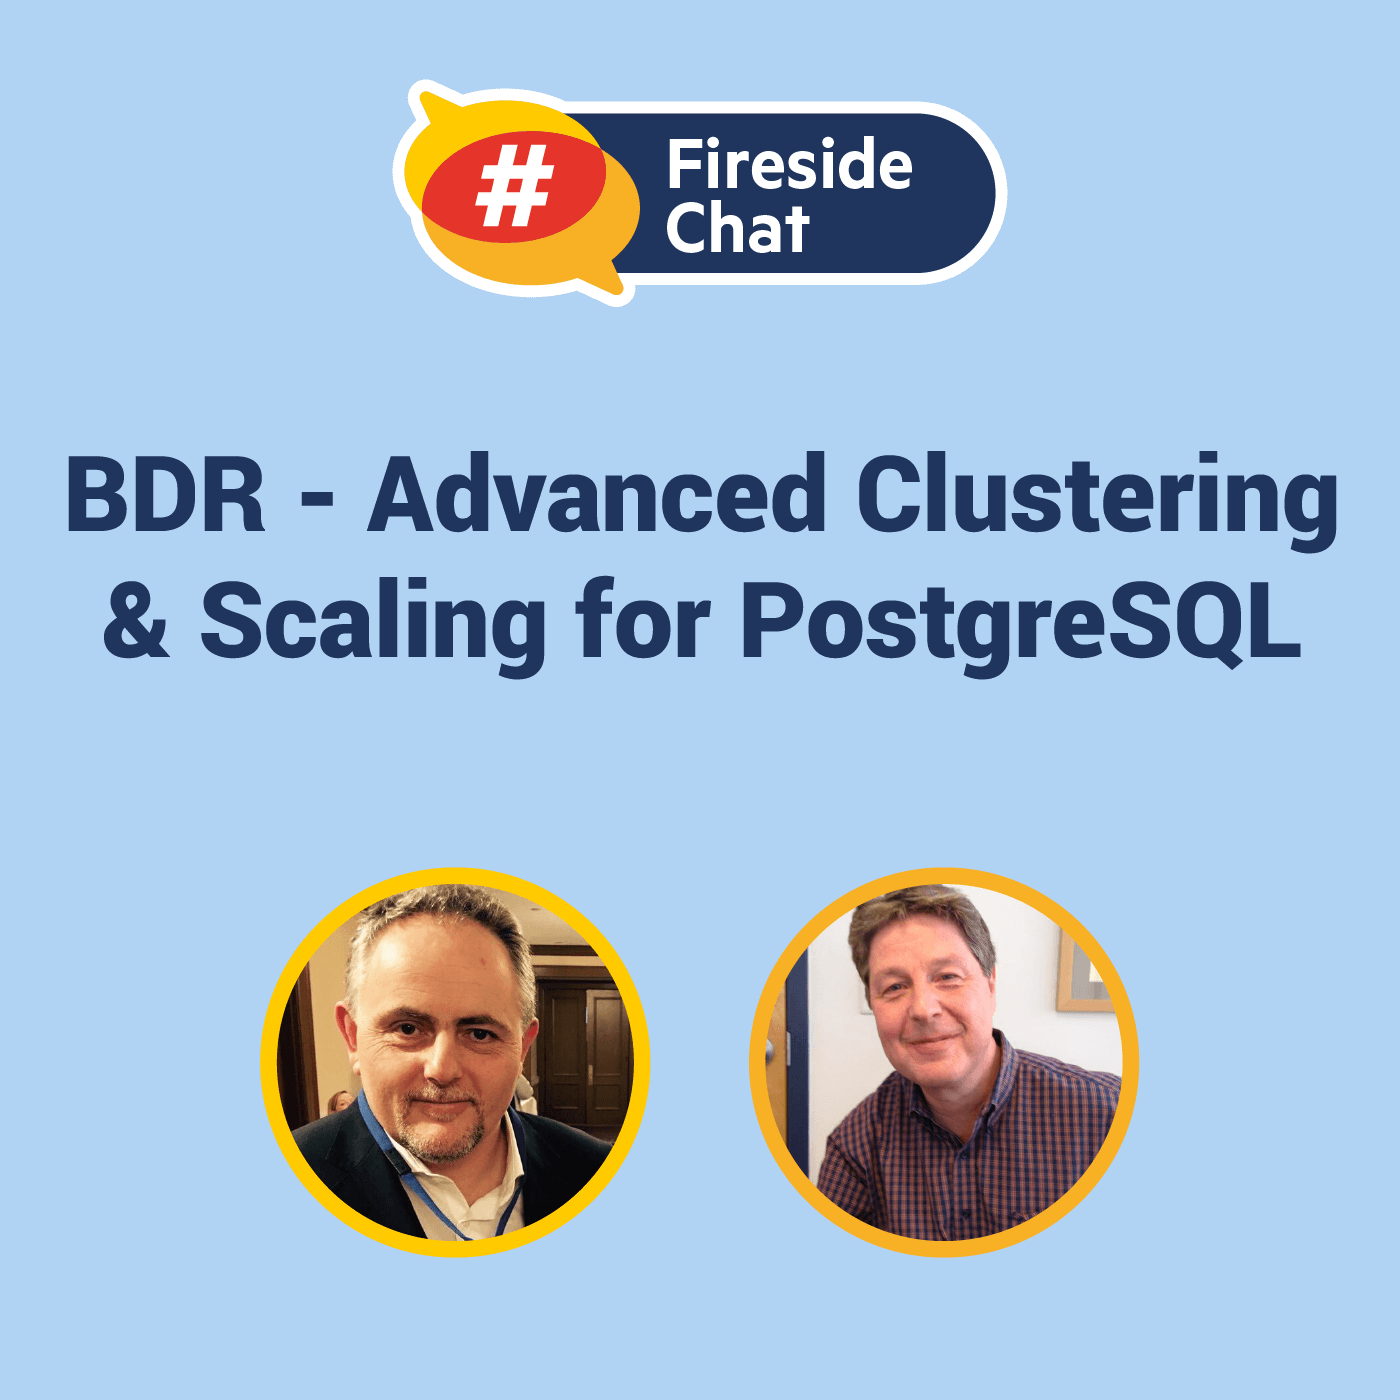 Fireside Chat: BDR - Advanced Clustering & Scaling for PostgreSQL